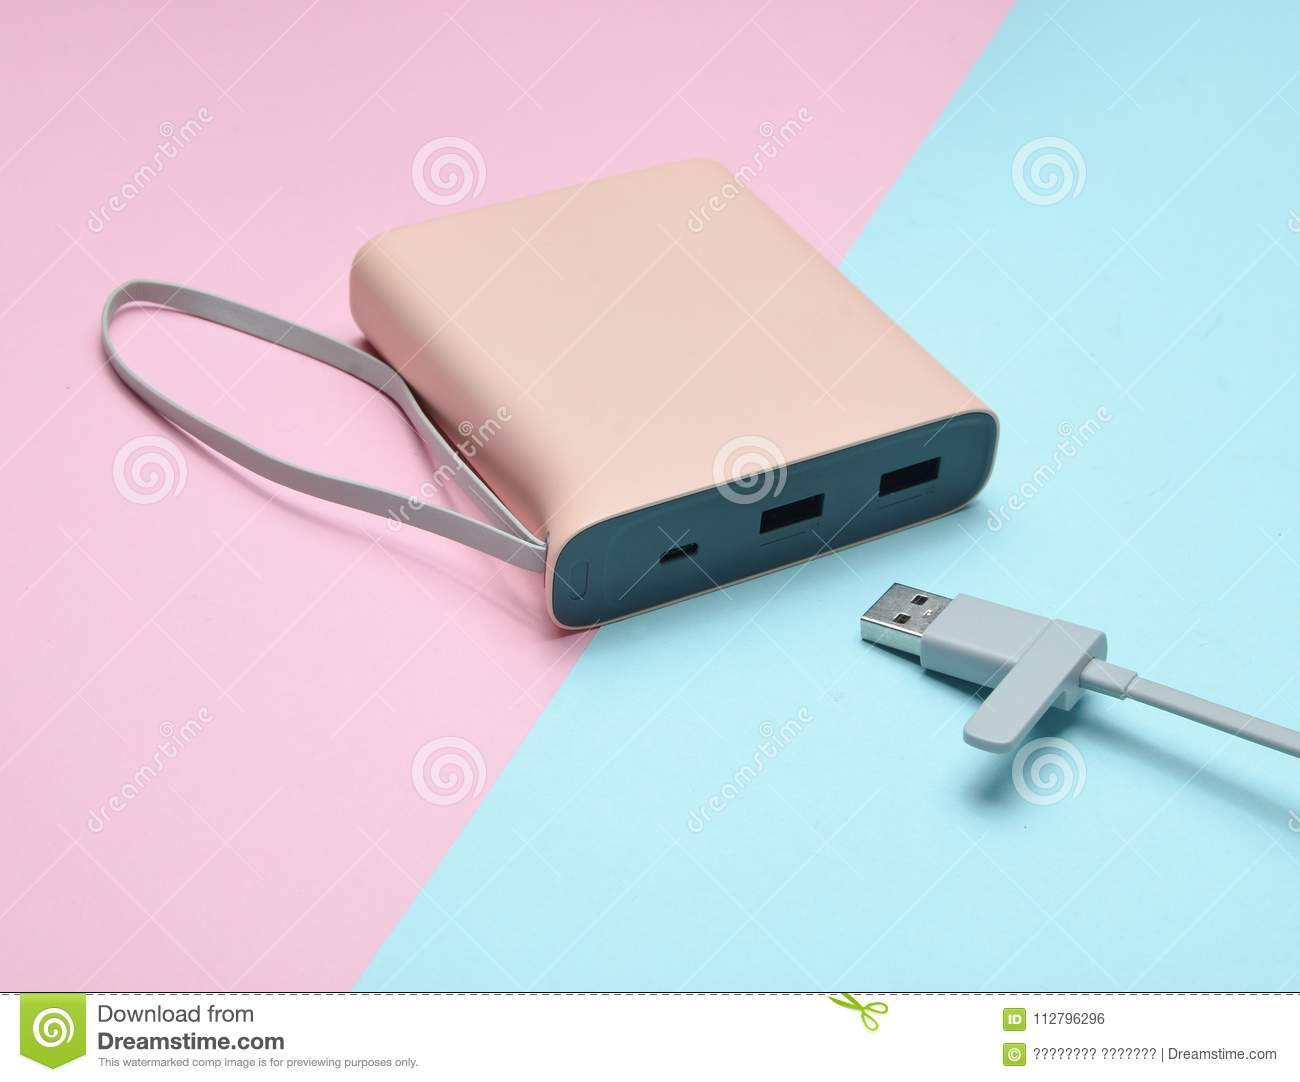 Download External Battery For Charging Smartphones And Gadgets With A Usb Cable Close-up On A Pink Blue Pastel Background. Power Bank. Stock Photo - Image of cable, electronic: 112796296